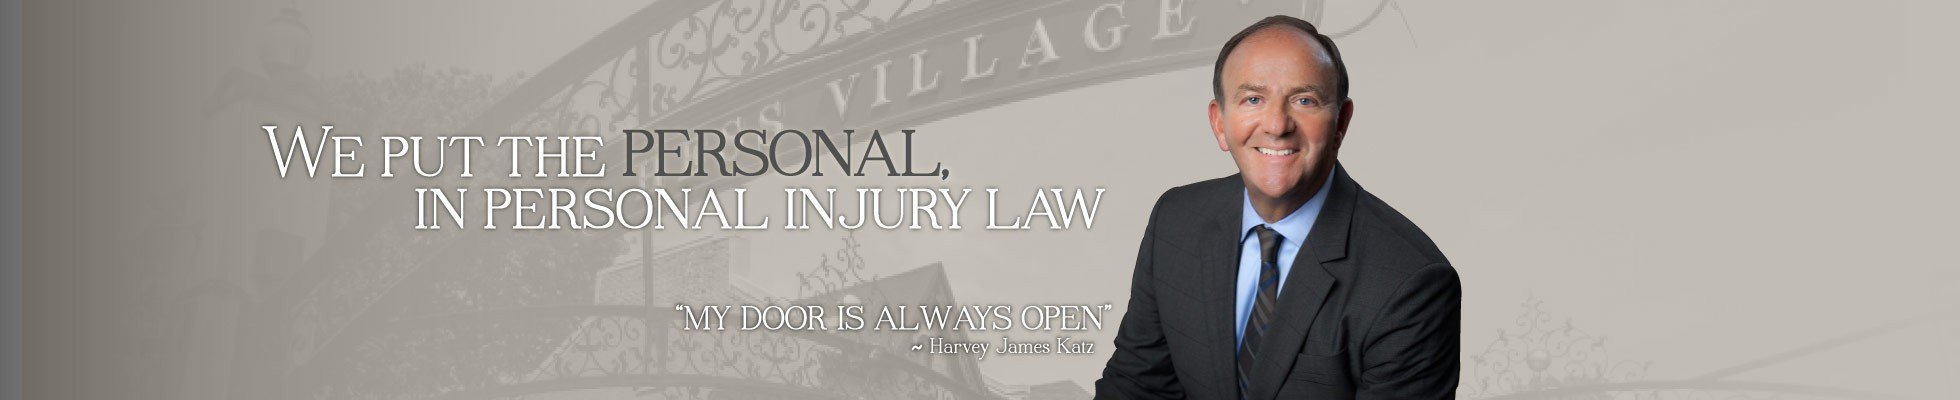 Harvey Katz Law Office homepage banner